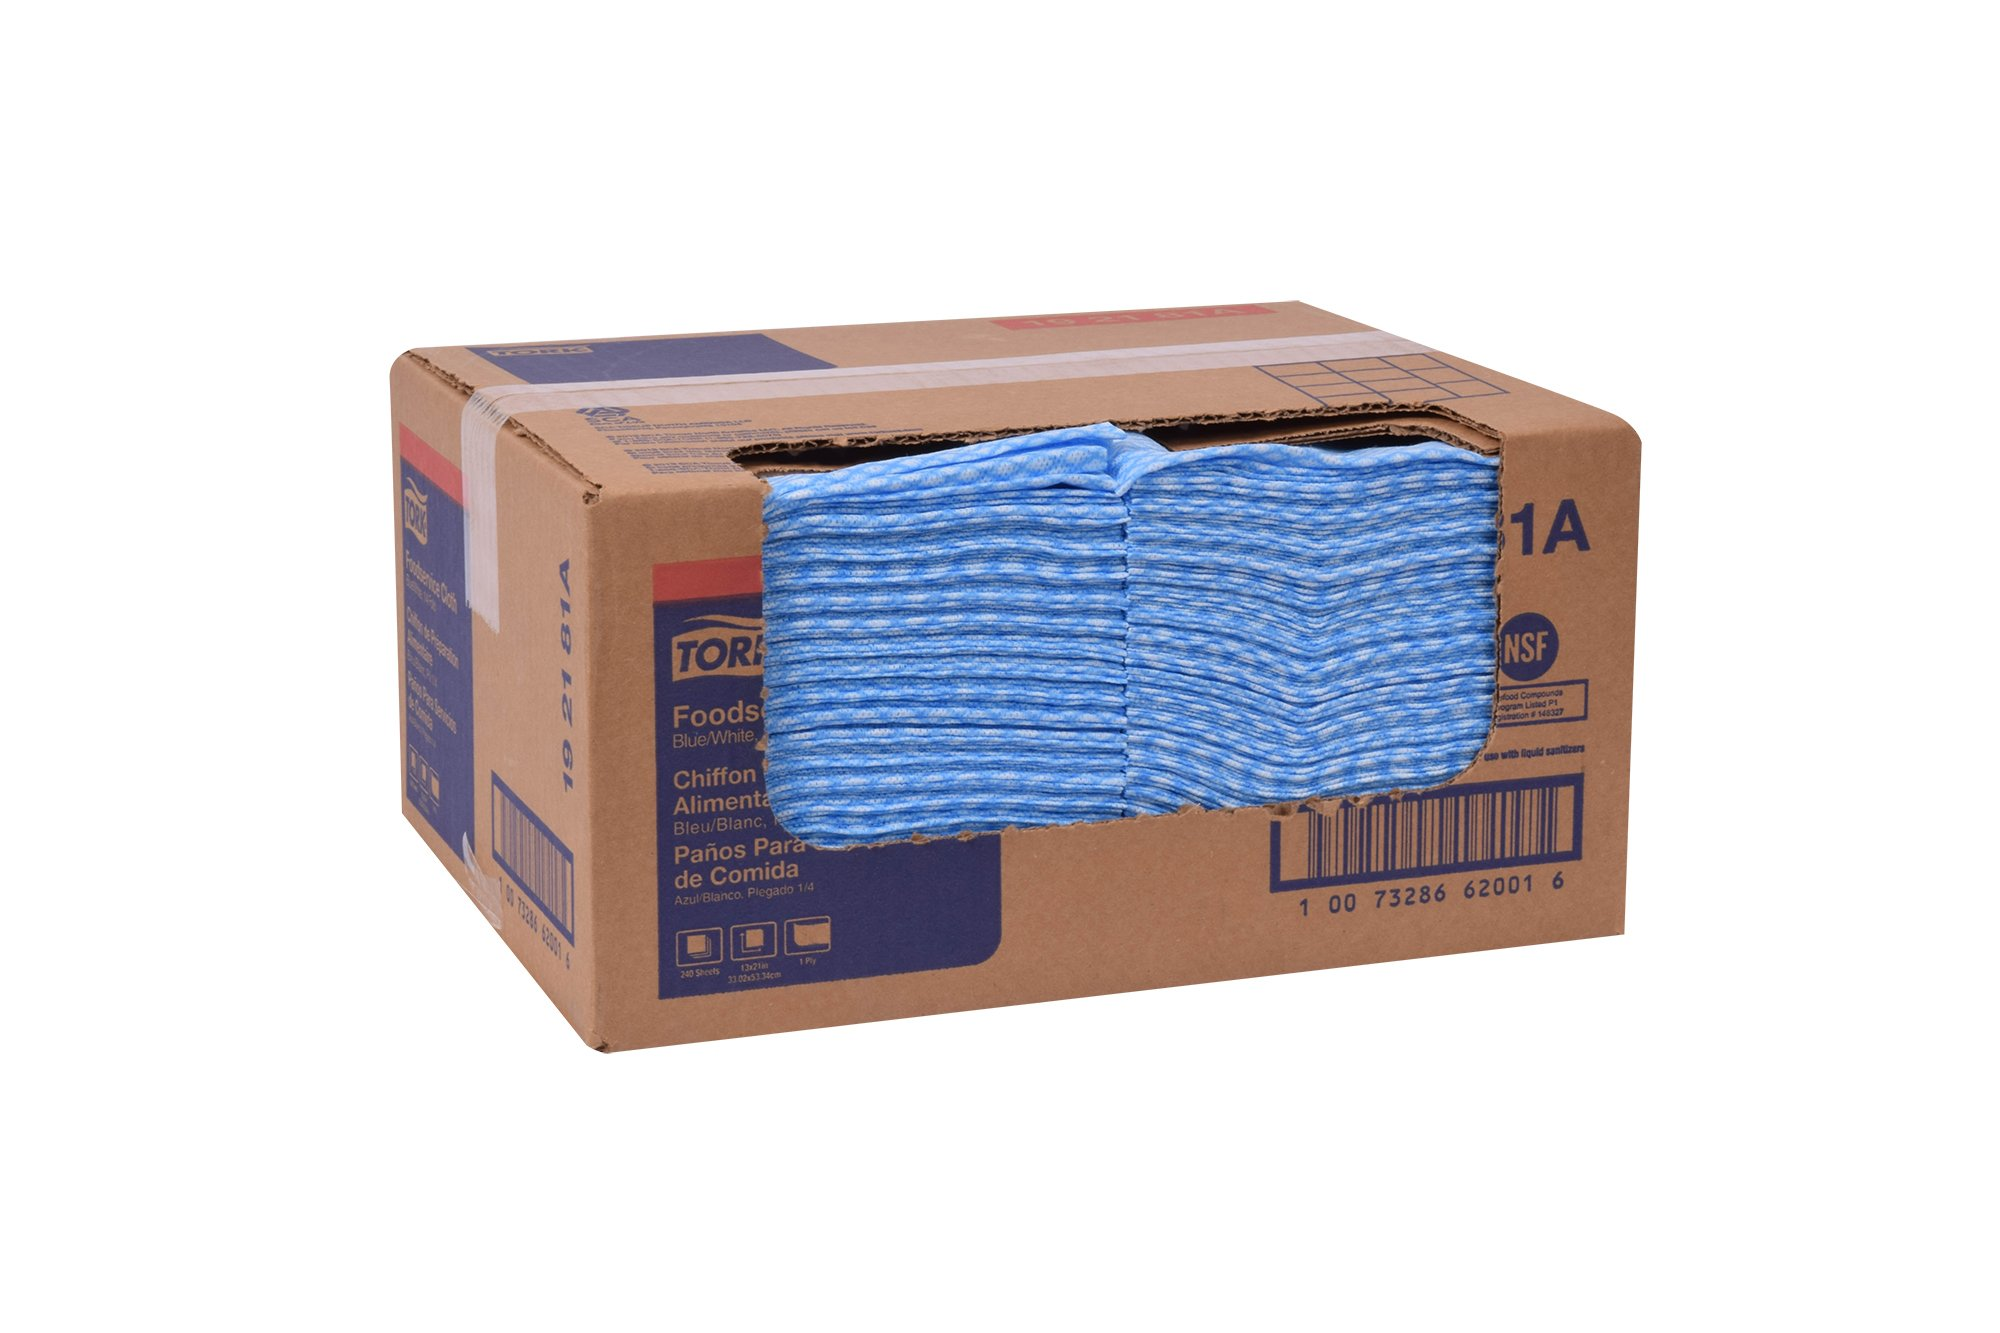 Tork 192181A Foodservice Cloth, 1/4 Fold, 1-Ply, 13'' Width x 21'' Length, Blue/White (Case of 1 Box, 240 Cloths) by Tork (Image #8)